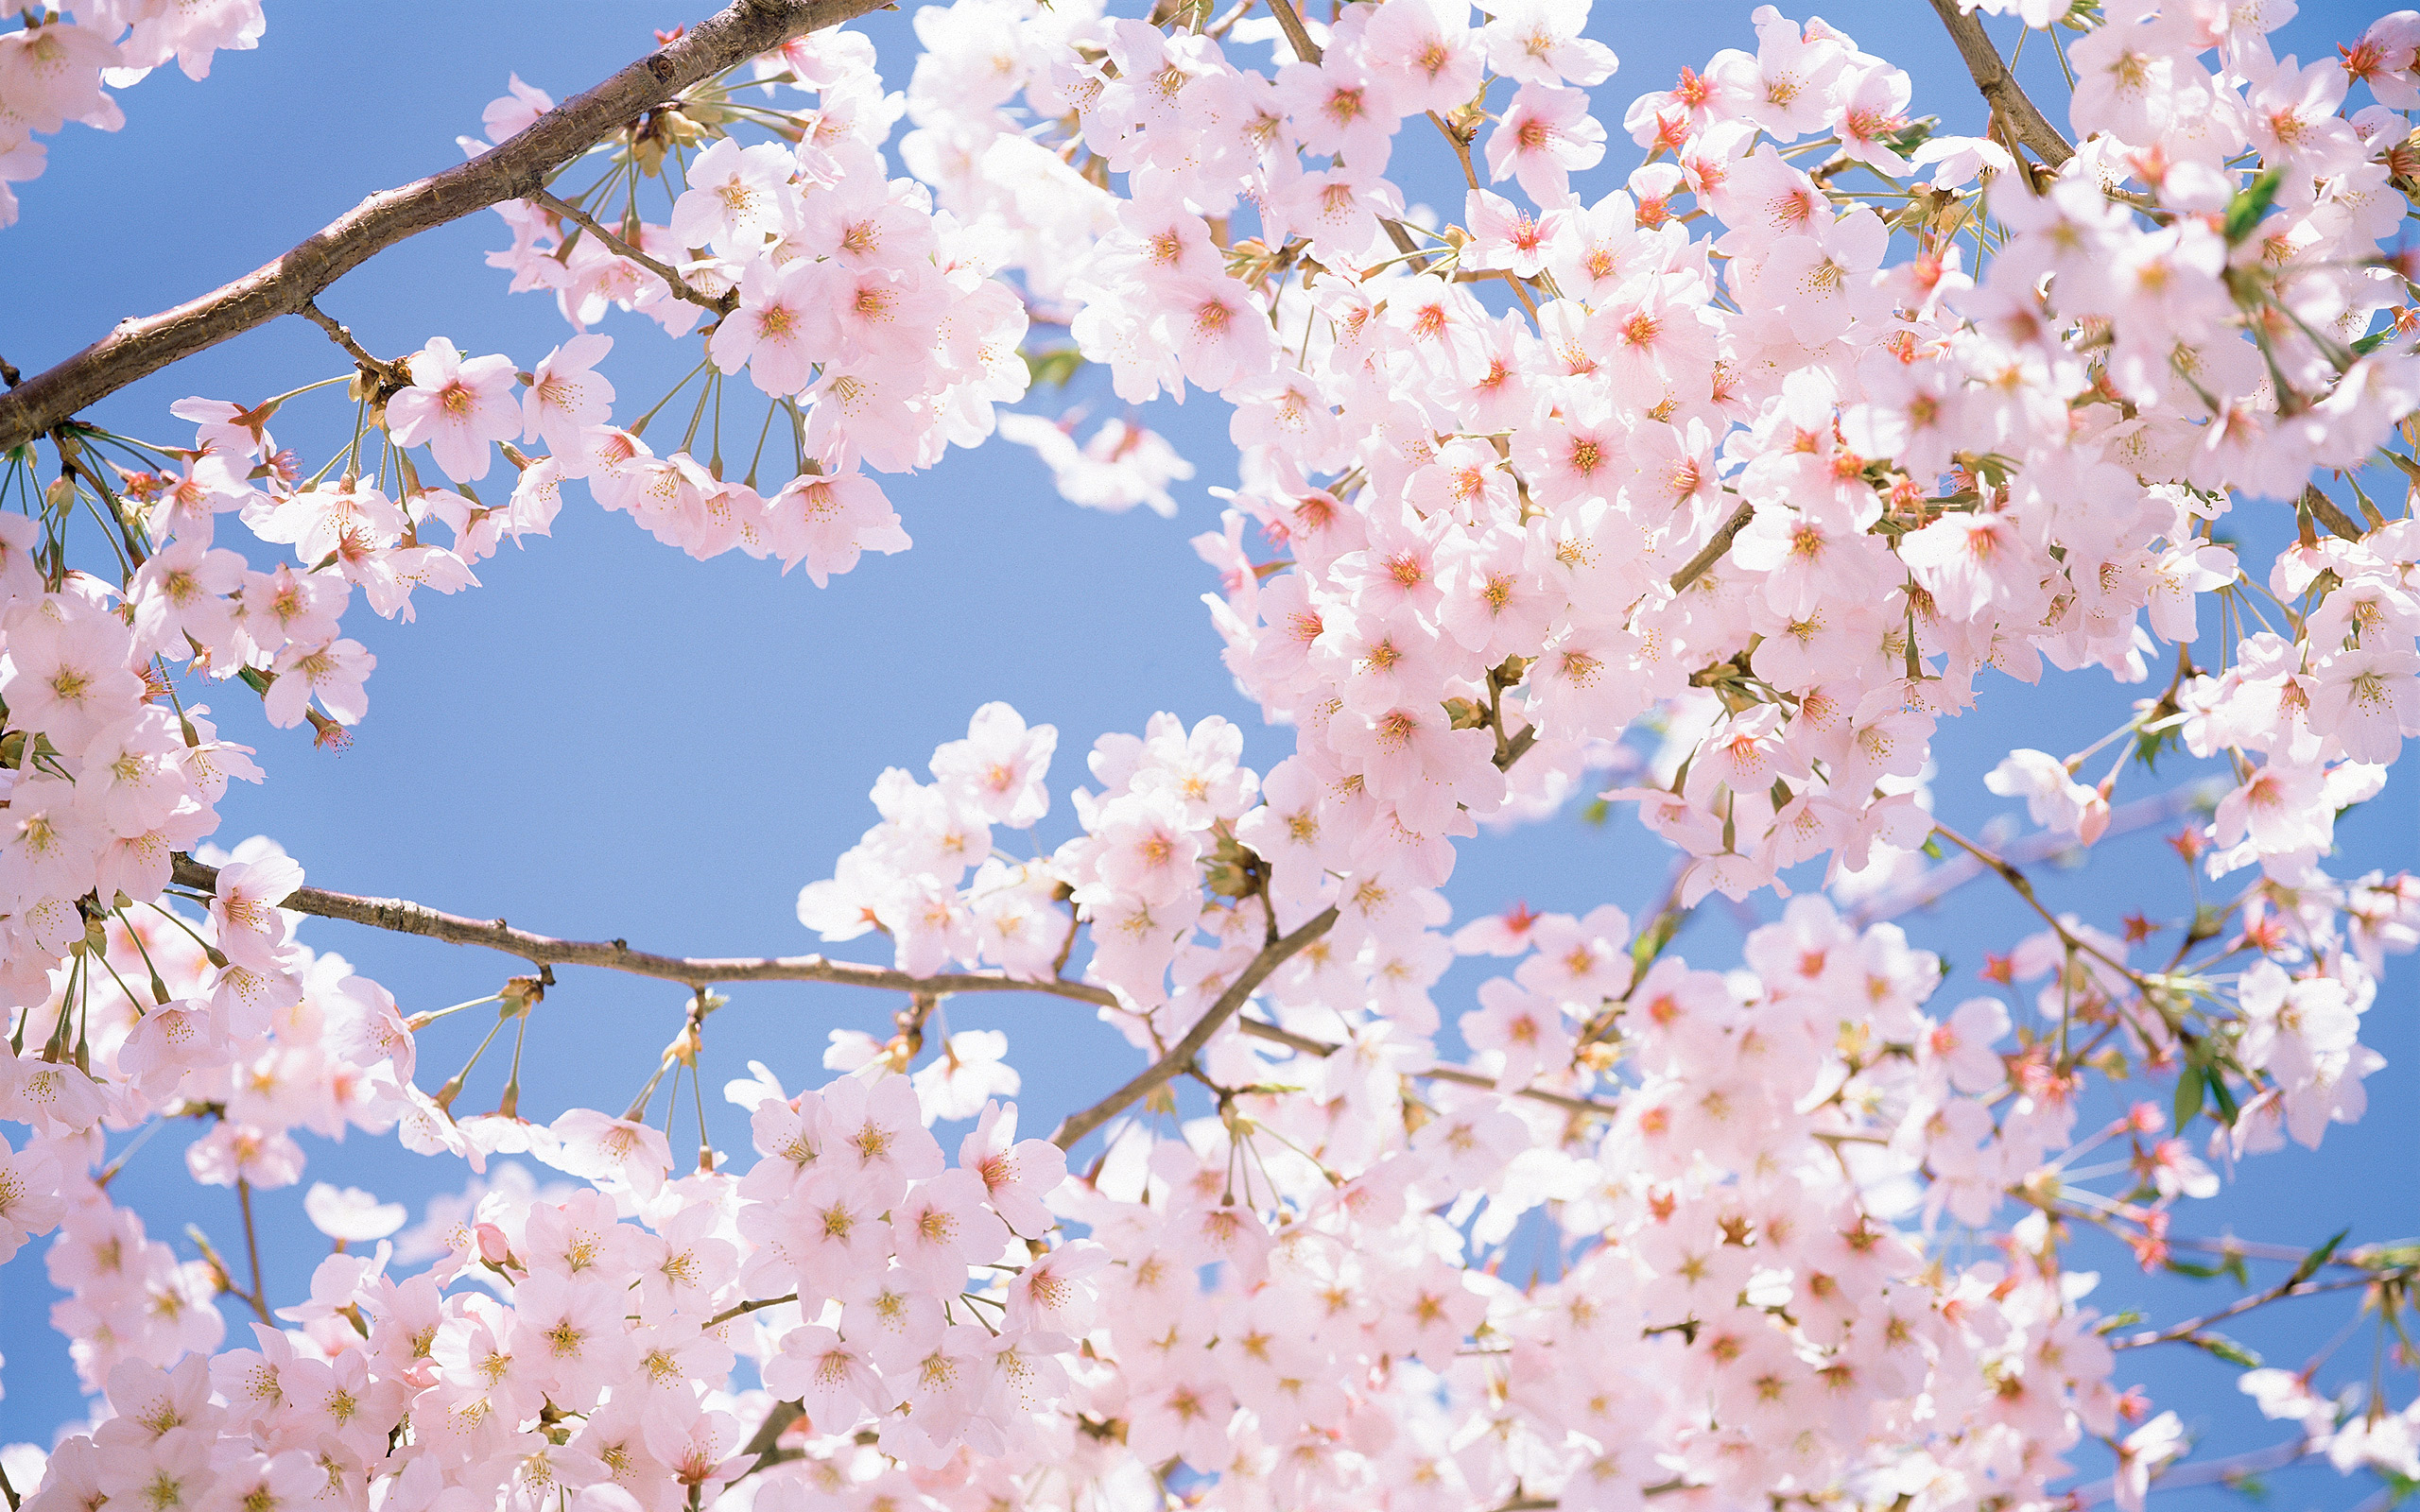 3d Nature Wallpaper For Desktop Full Size Flowers Cherry Blossom Wallpapers Pixelstalk Net